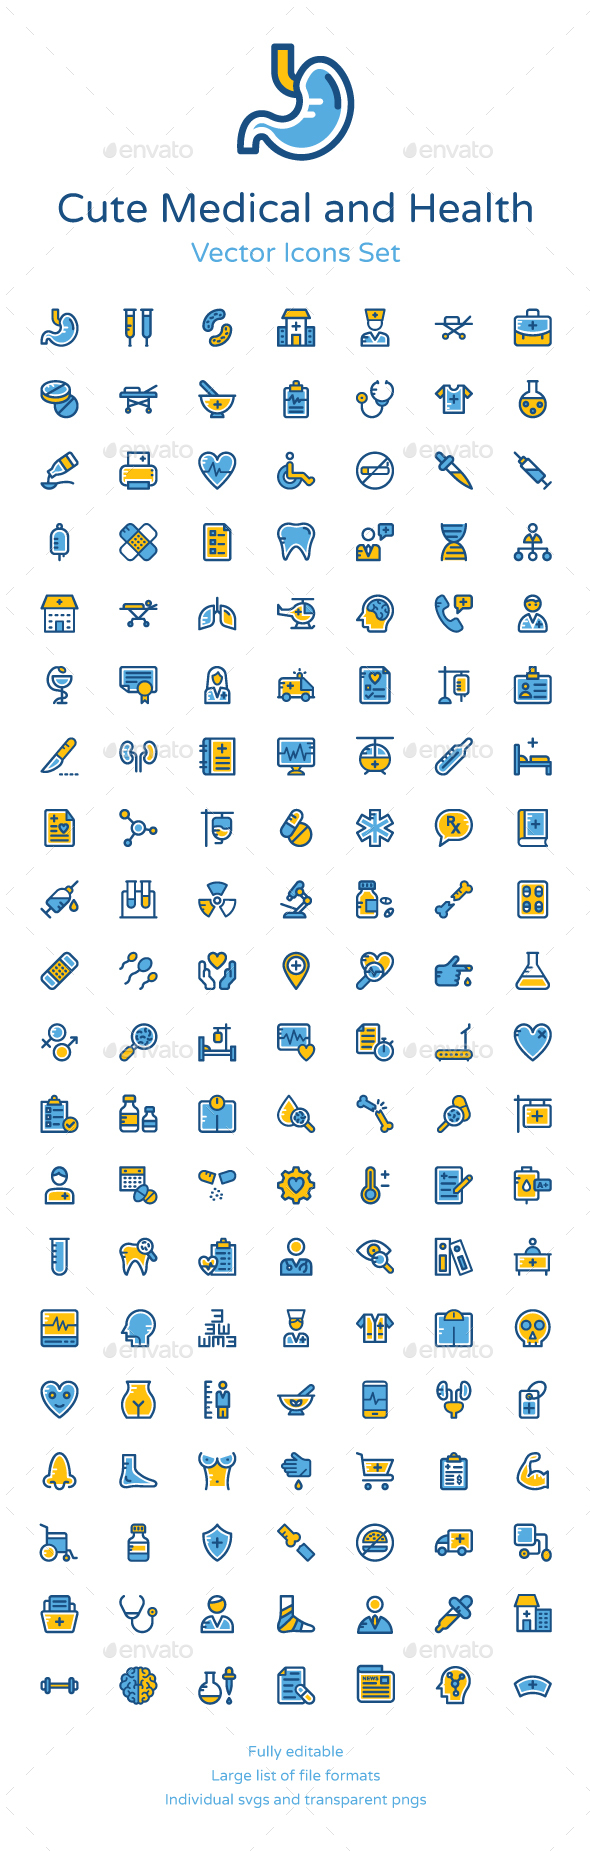 125+ Cute Medical and Health Icons - Icons